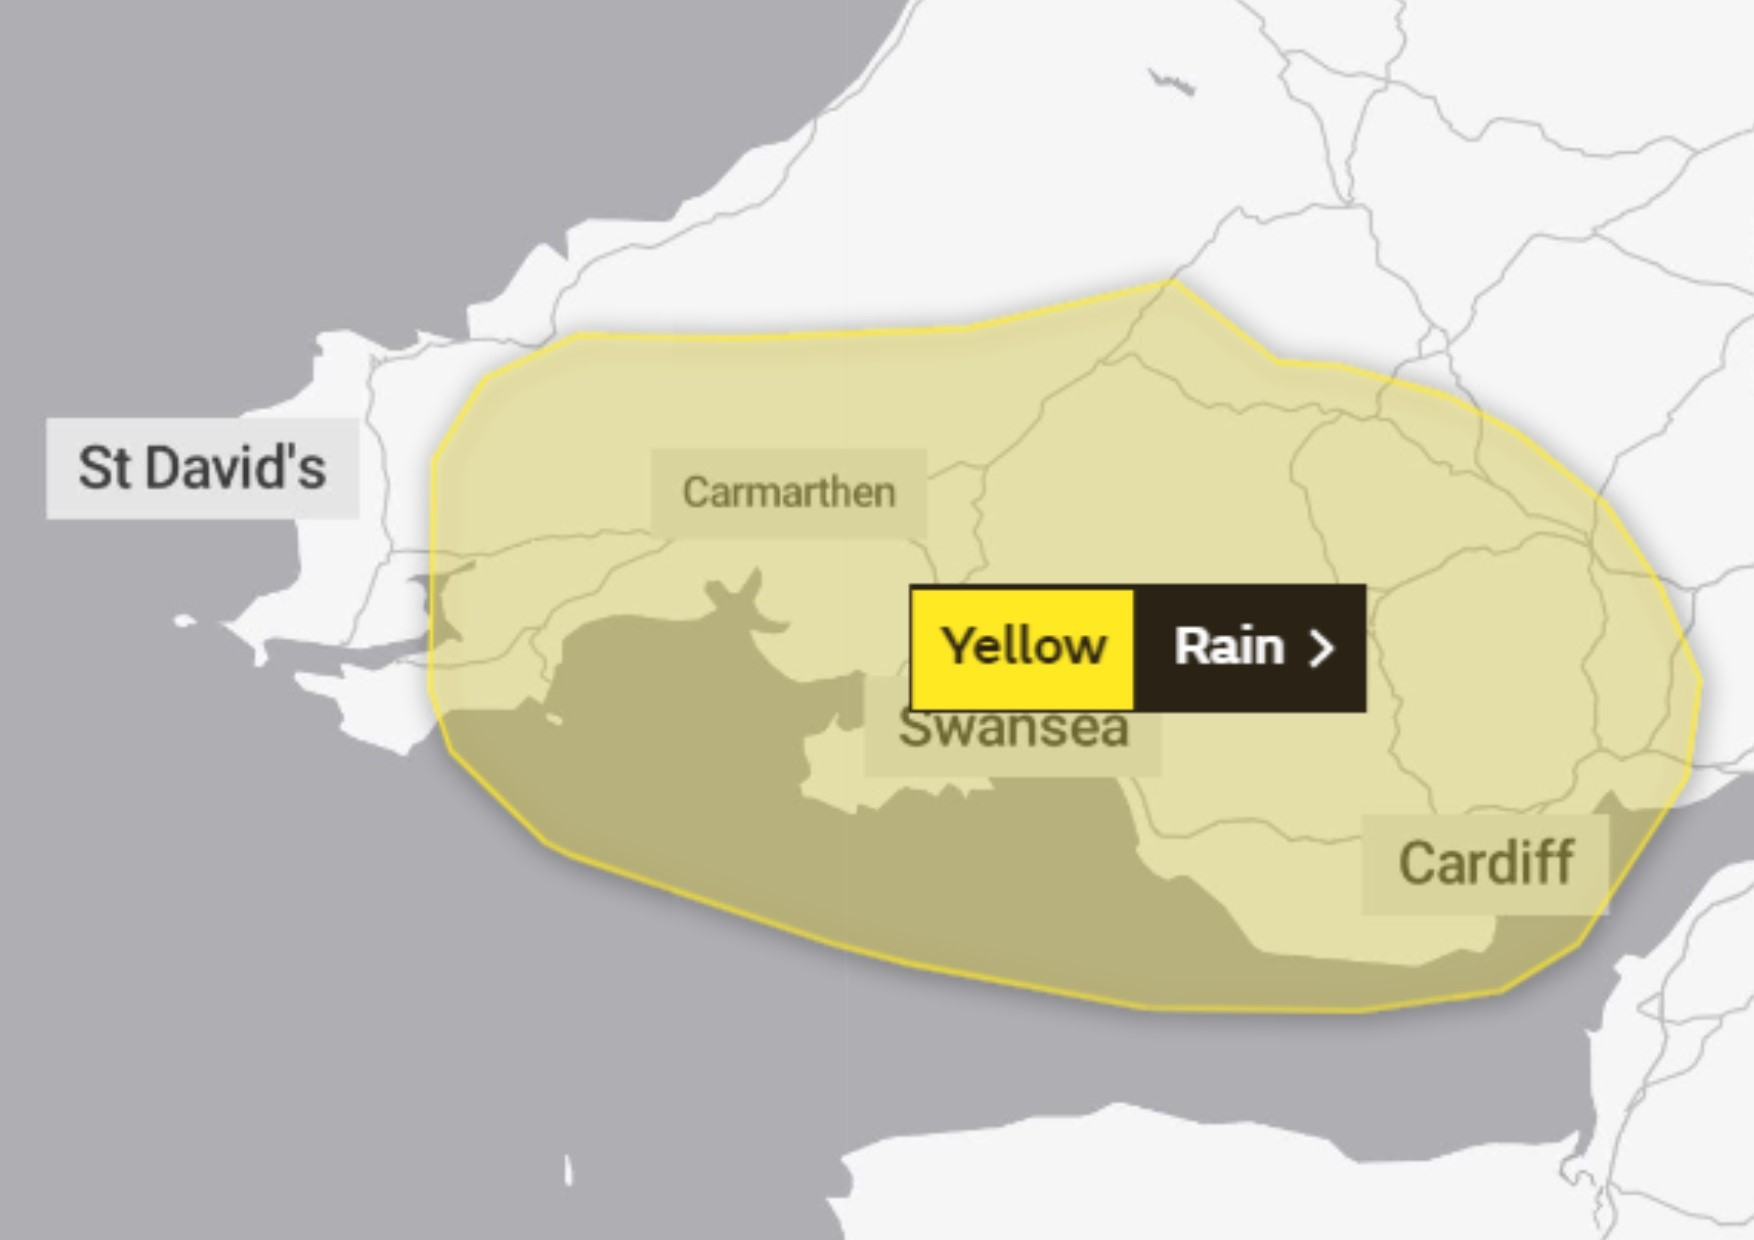 Pembrokeshire could see heavy rain and winds tonight